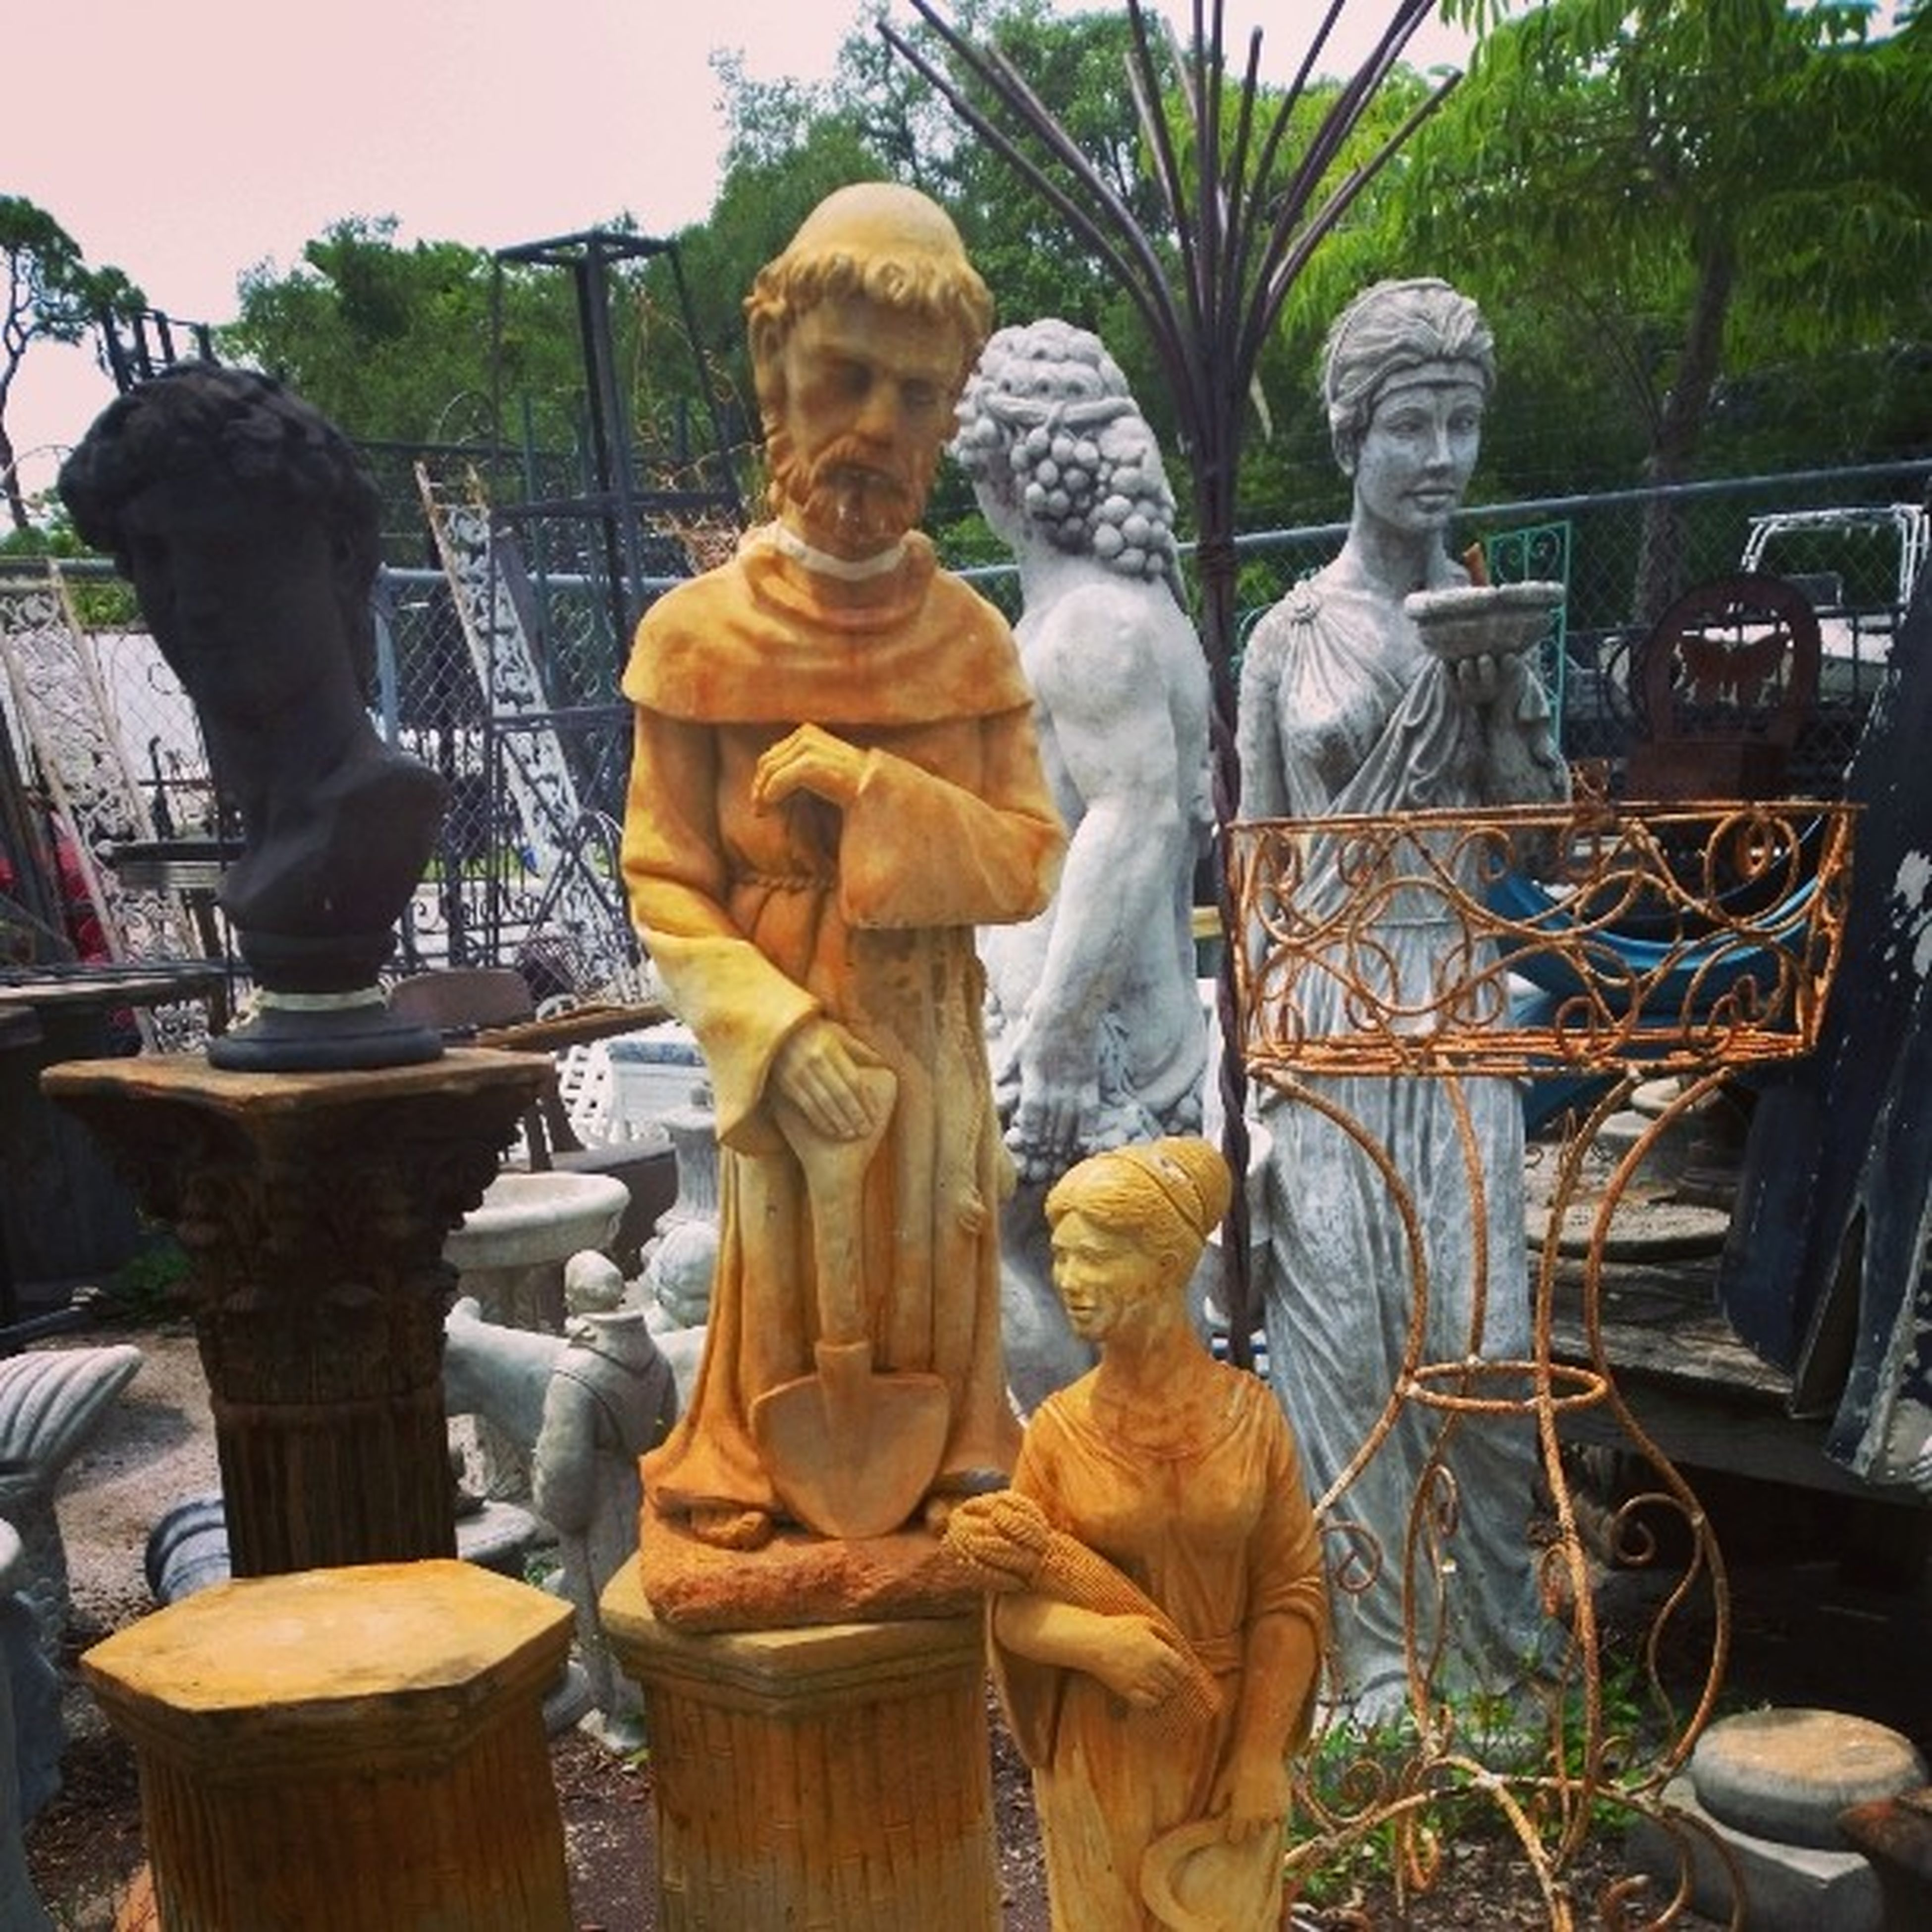 art and craft, art, human representation, sculpture, statue, creativity, religion, for sale, buddha, spirituality, temple - building, day, retail, outdoors, tree, no people, large group of objects